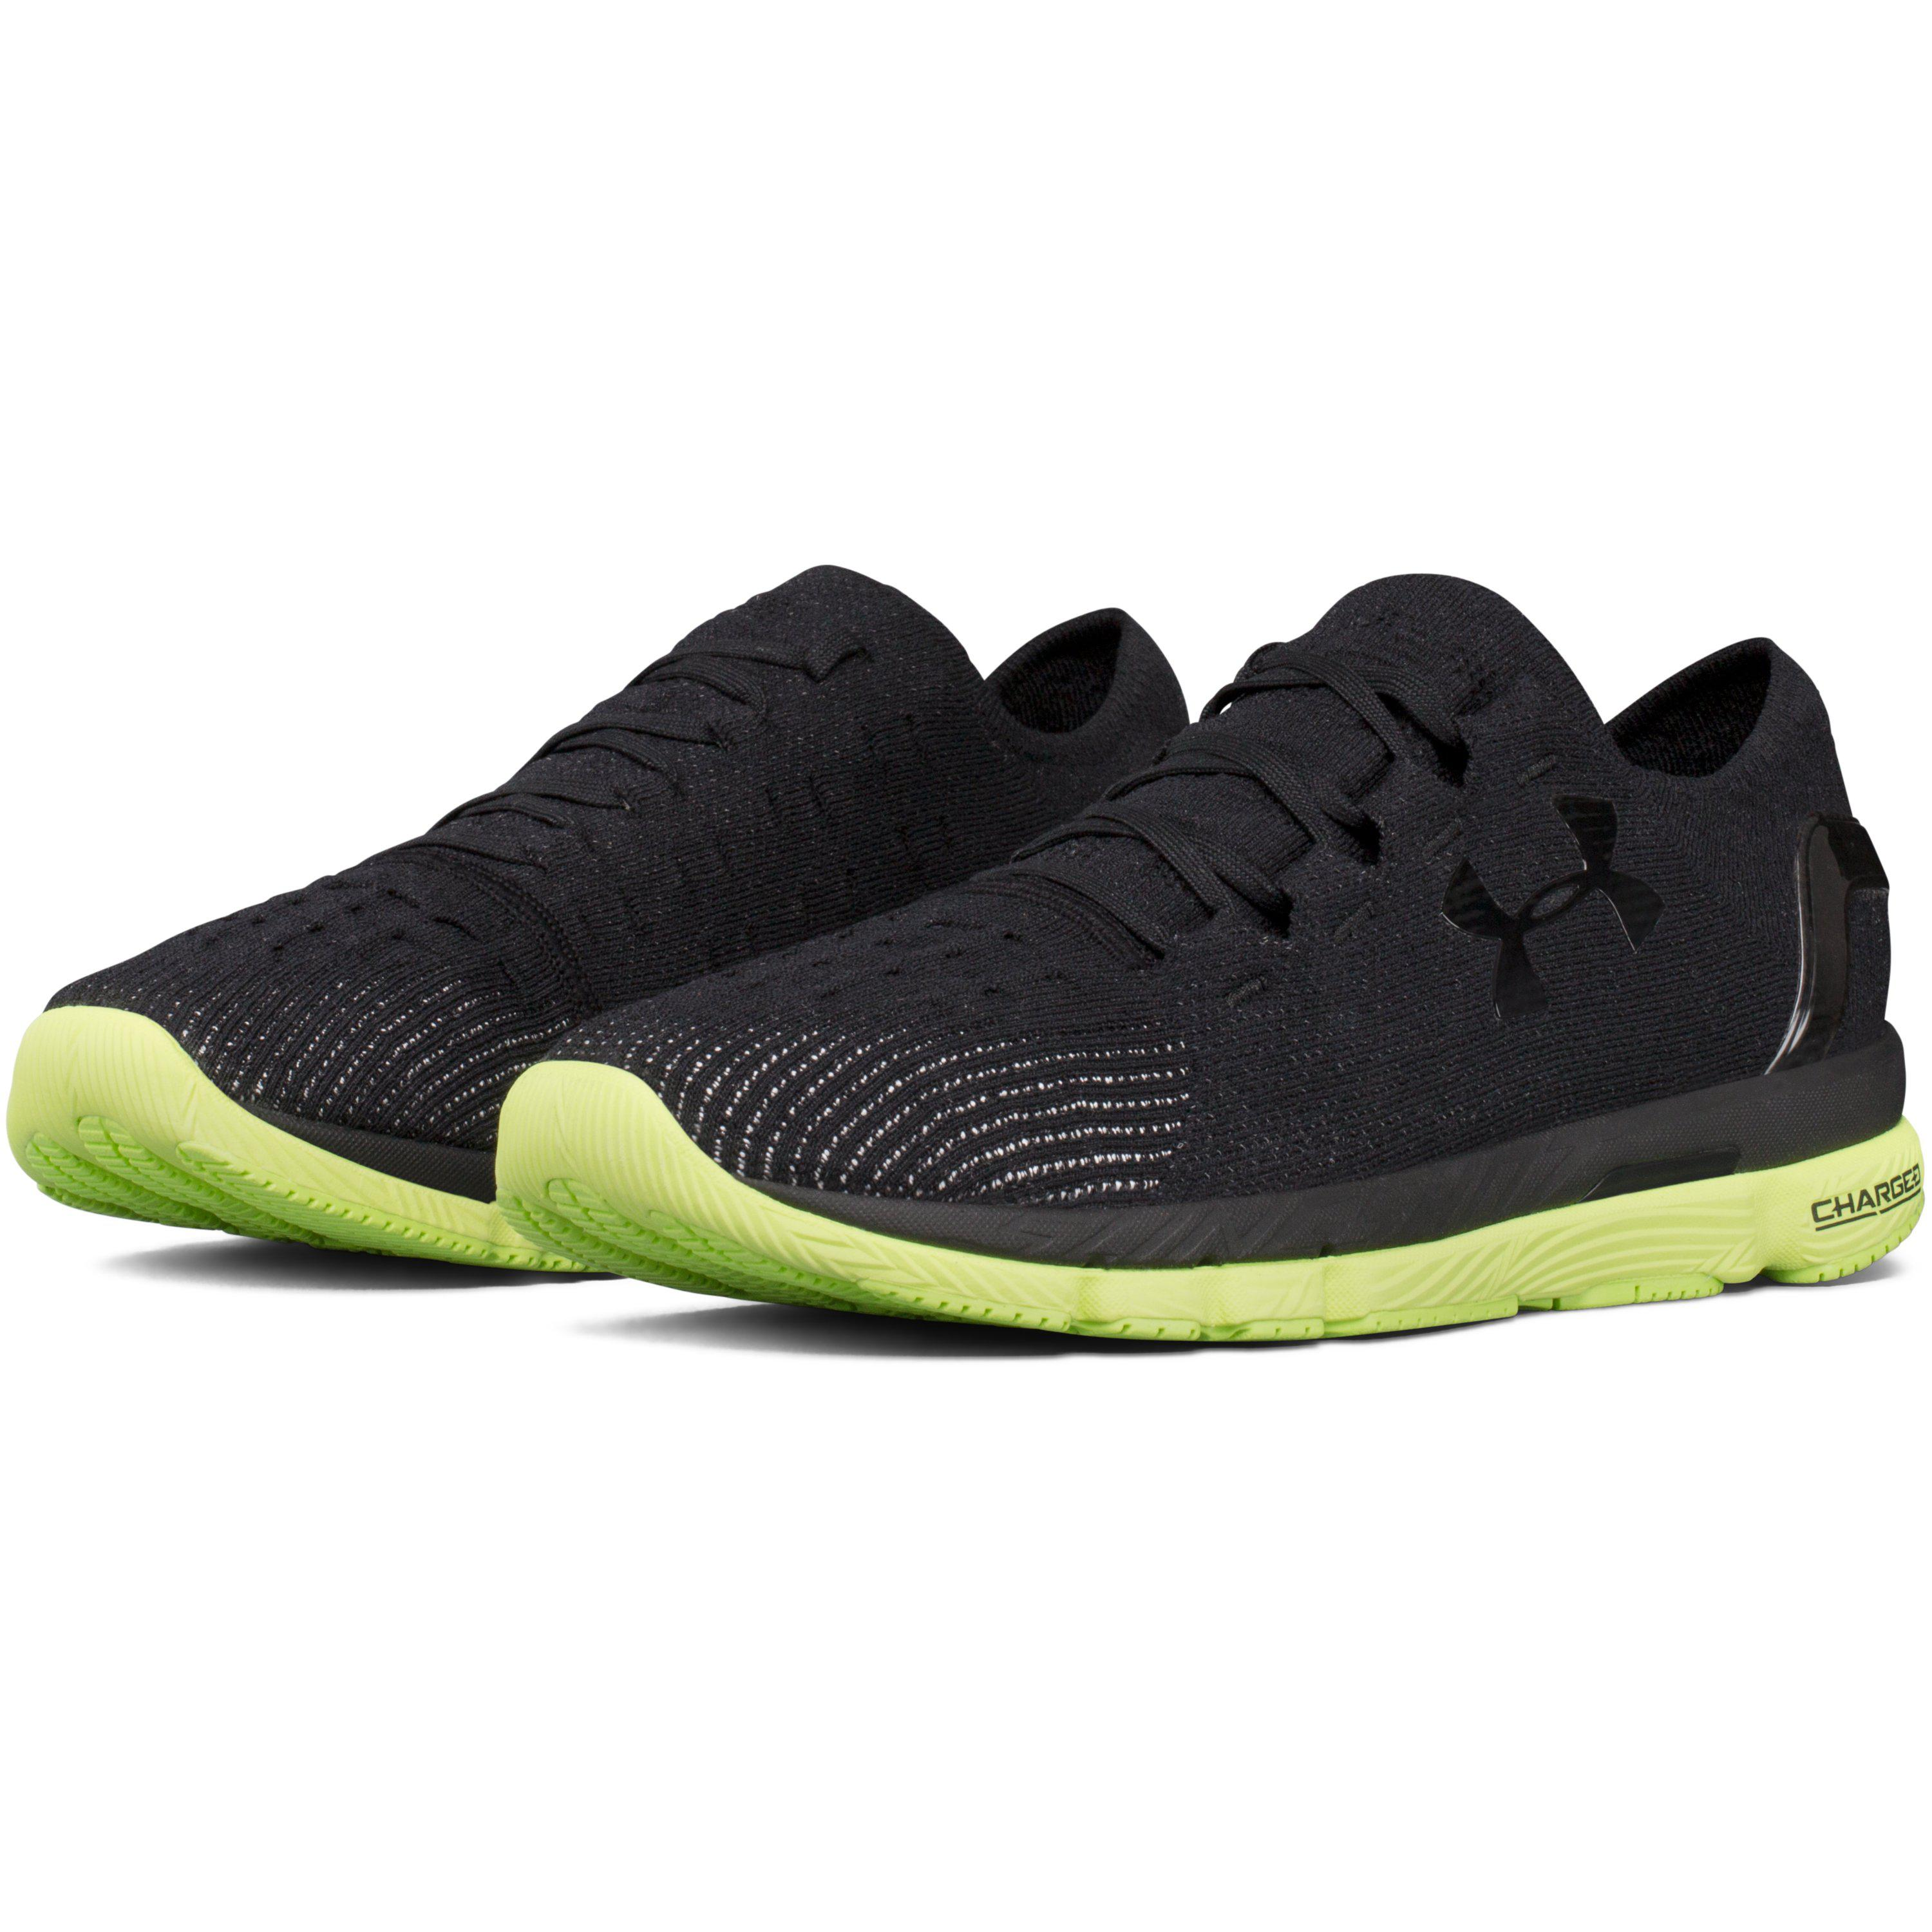 green and black under armour shoes off